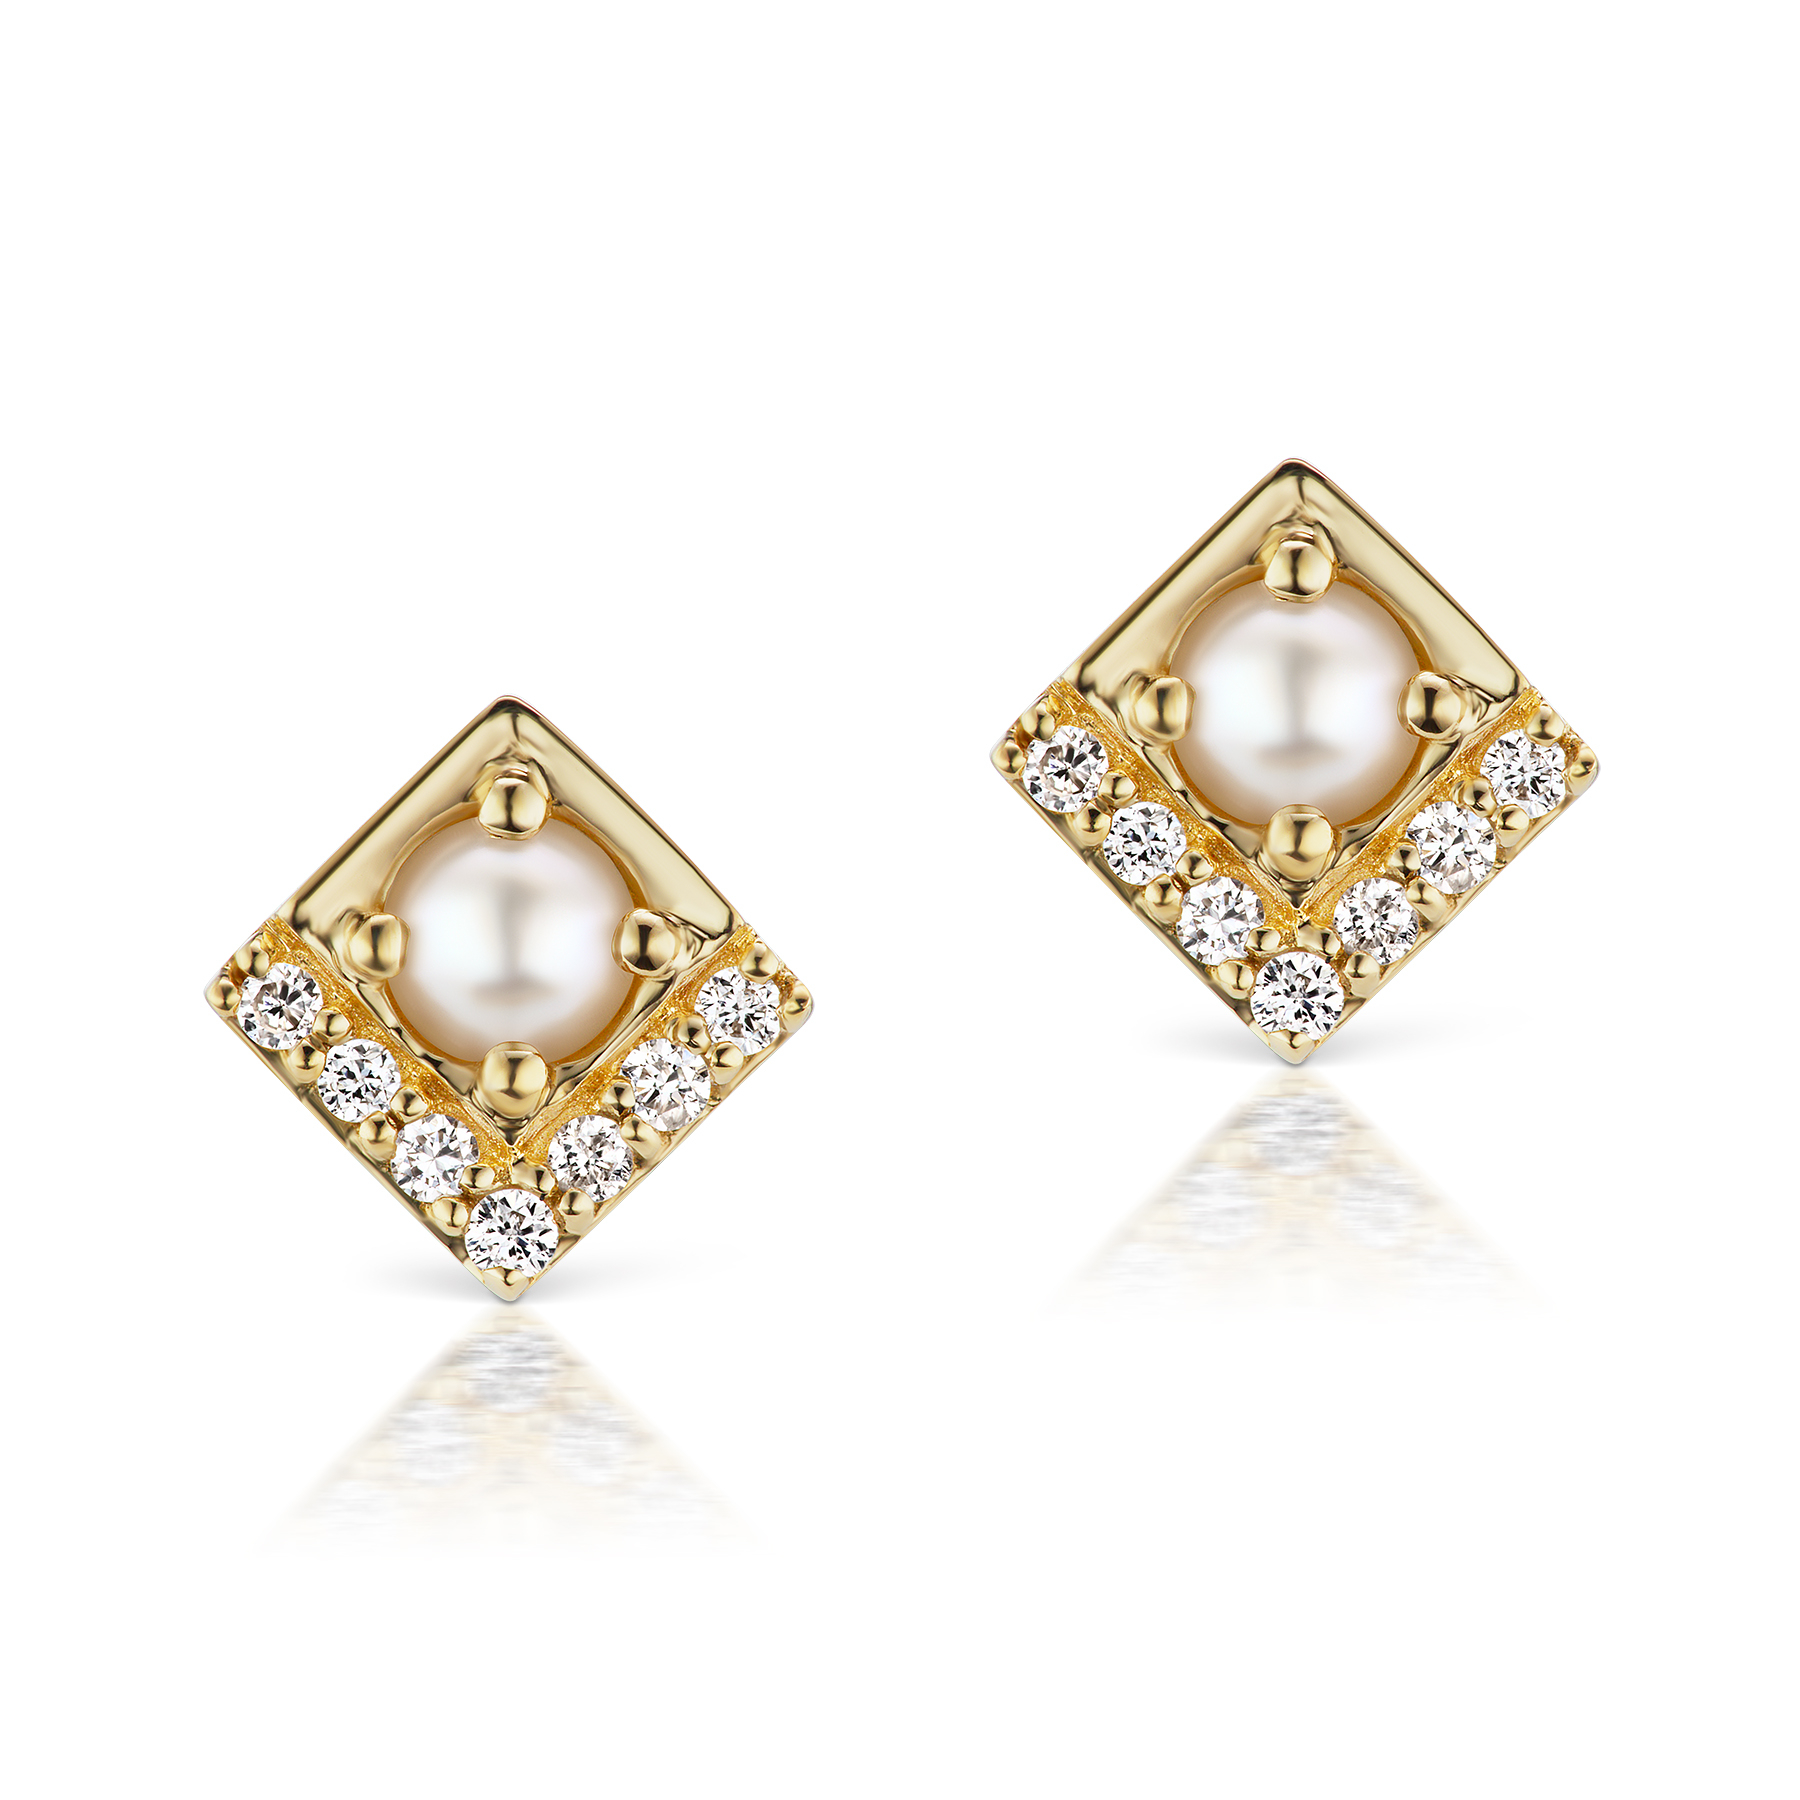 Jane Taylor Pearl & Diamond Petite Square Stud Earrings